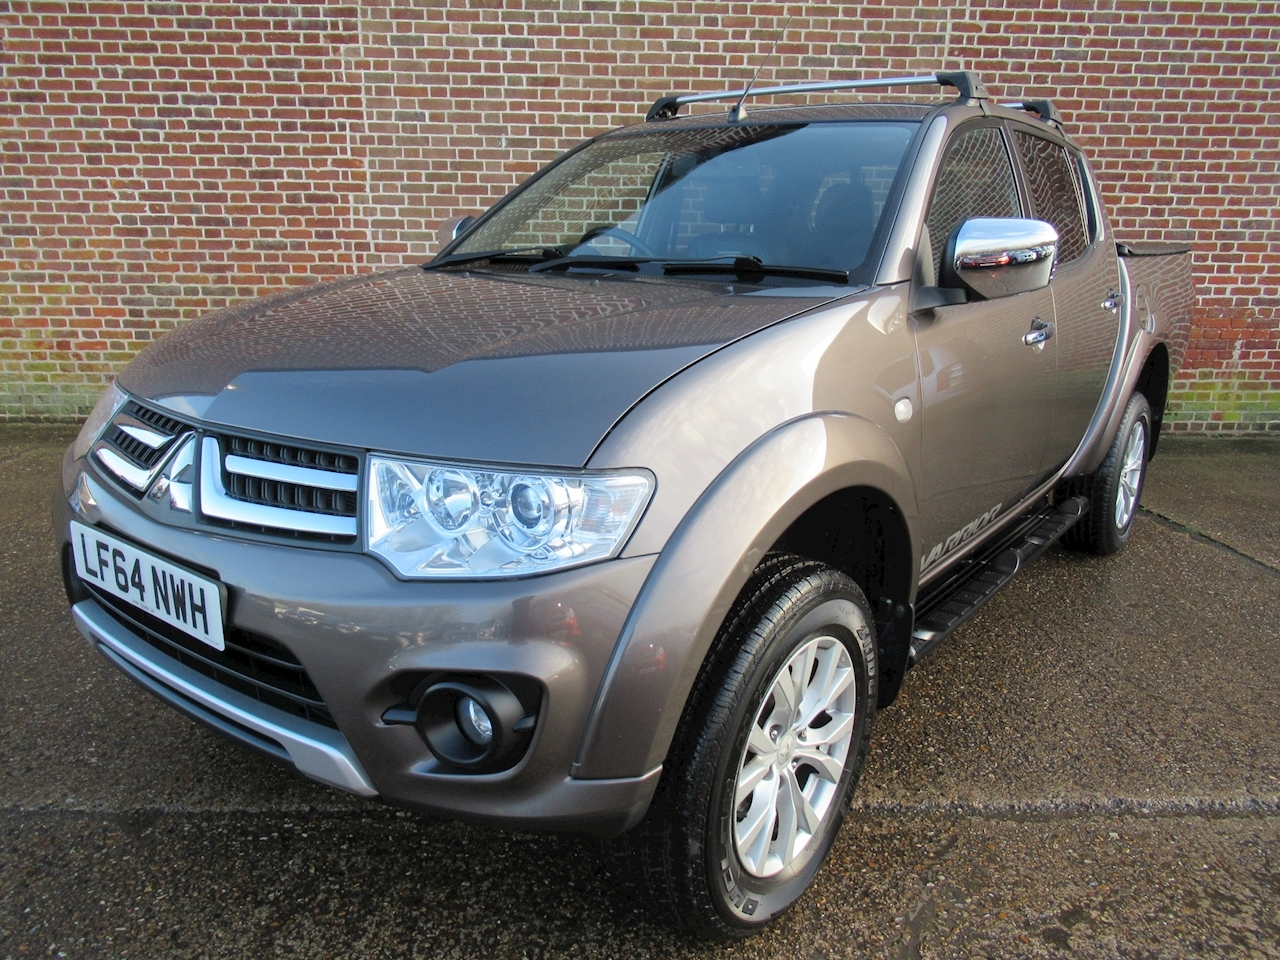 Mitsubishi L200 Di-D 4X4 Warrior Lb Dcb 2.5 4dr Pick-Up Manual Diesel